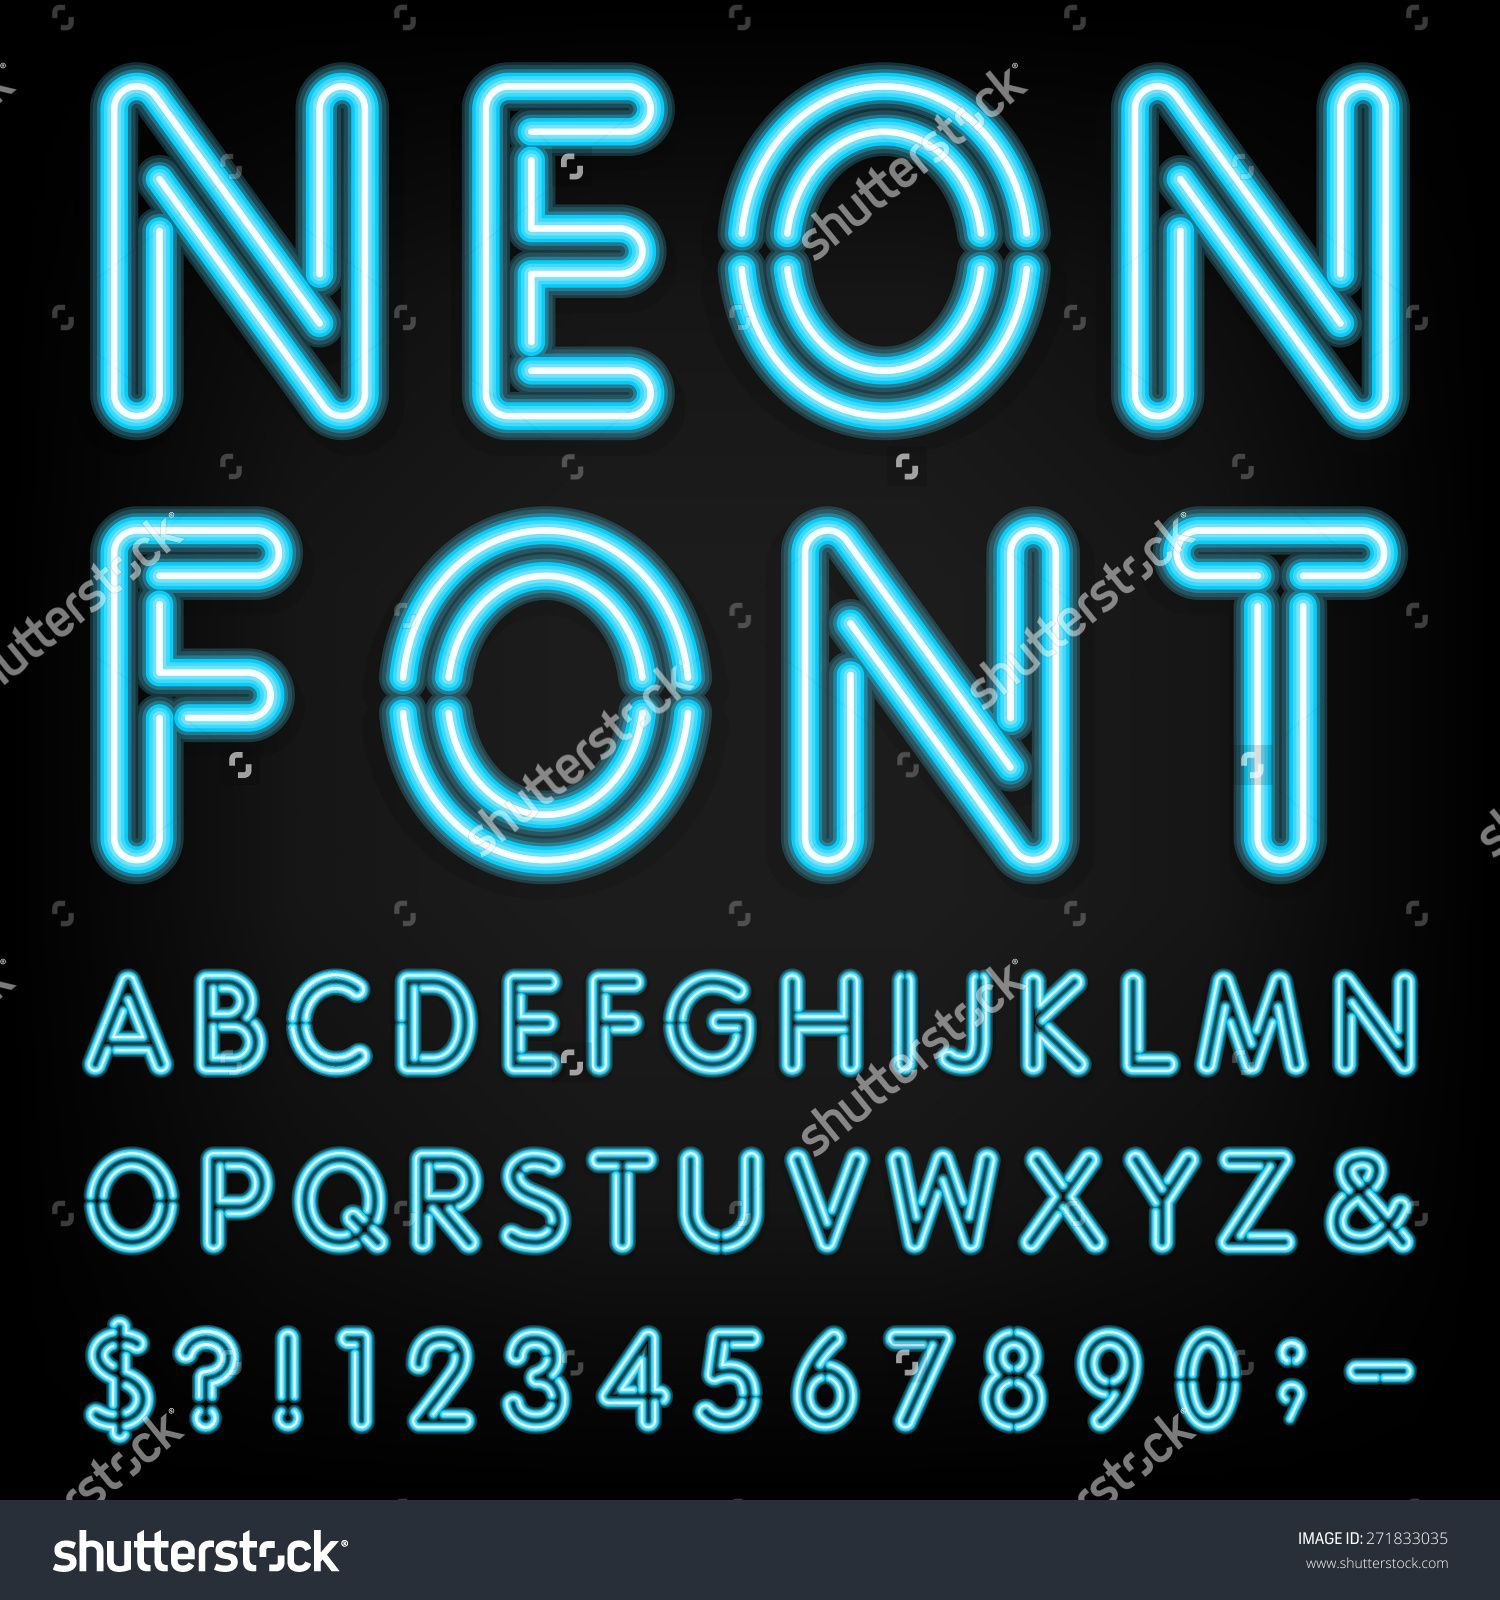 Japanese Calligraphy Font Generator Online Neon Font Generator Shutterstock Chalkboard Neon Fonts